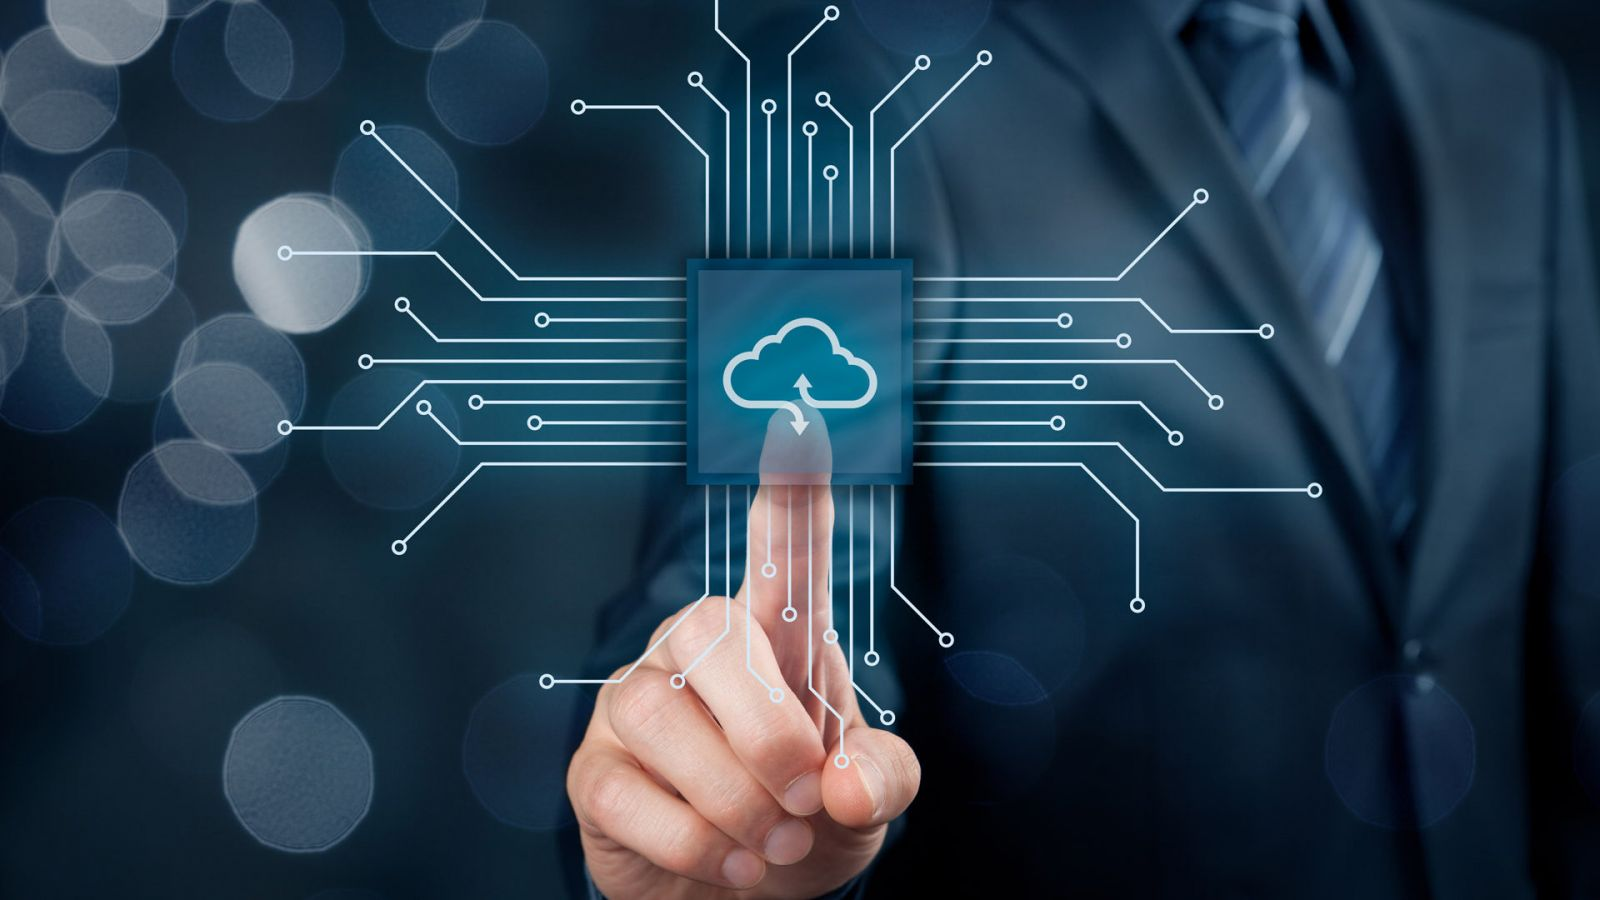 Software development with Cloud Computing